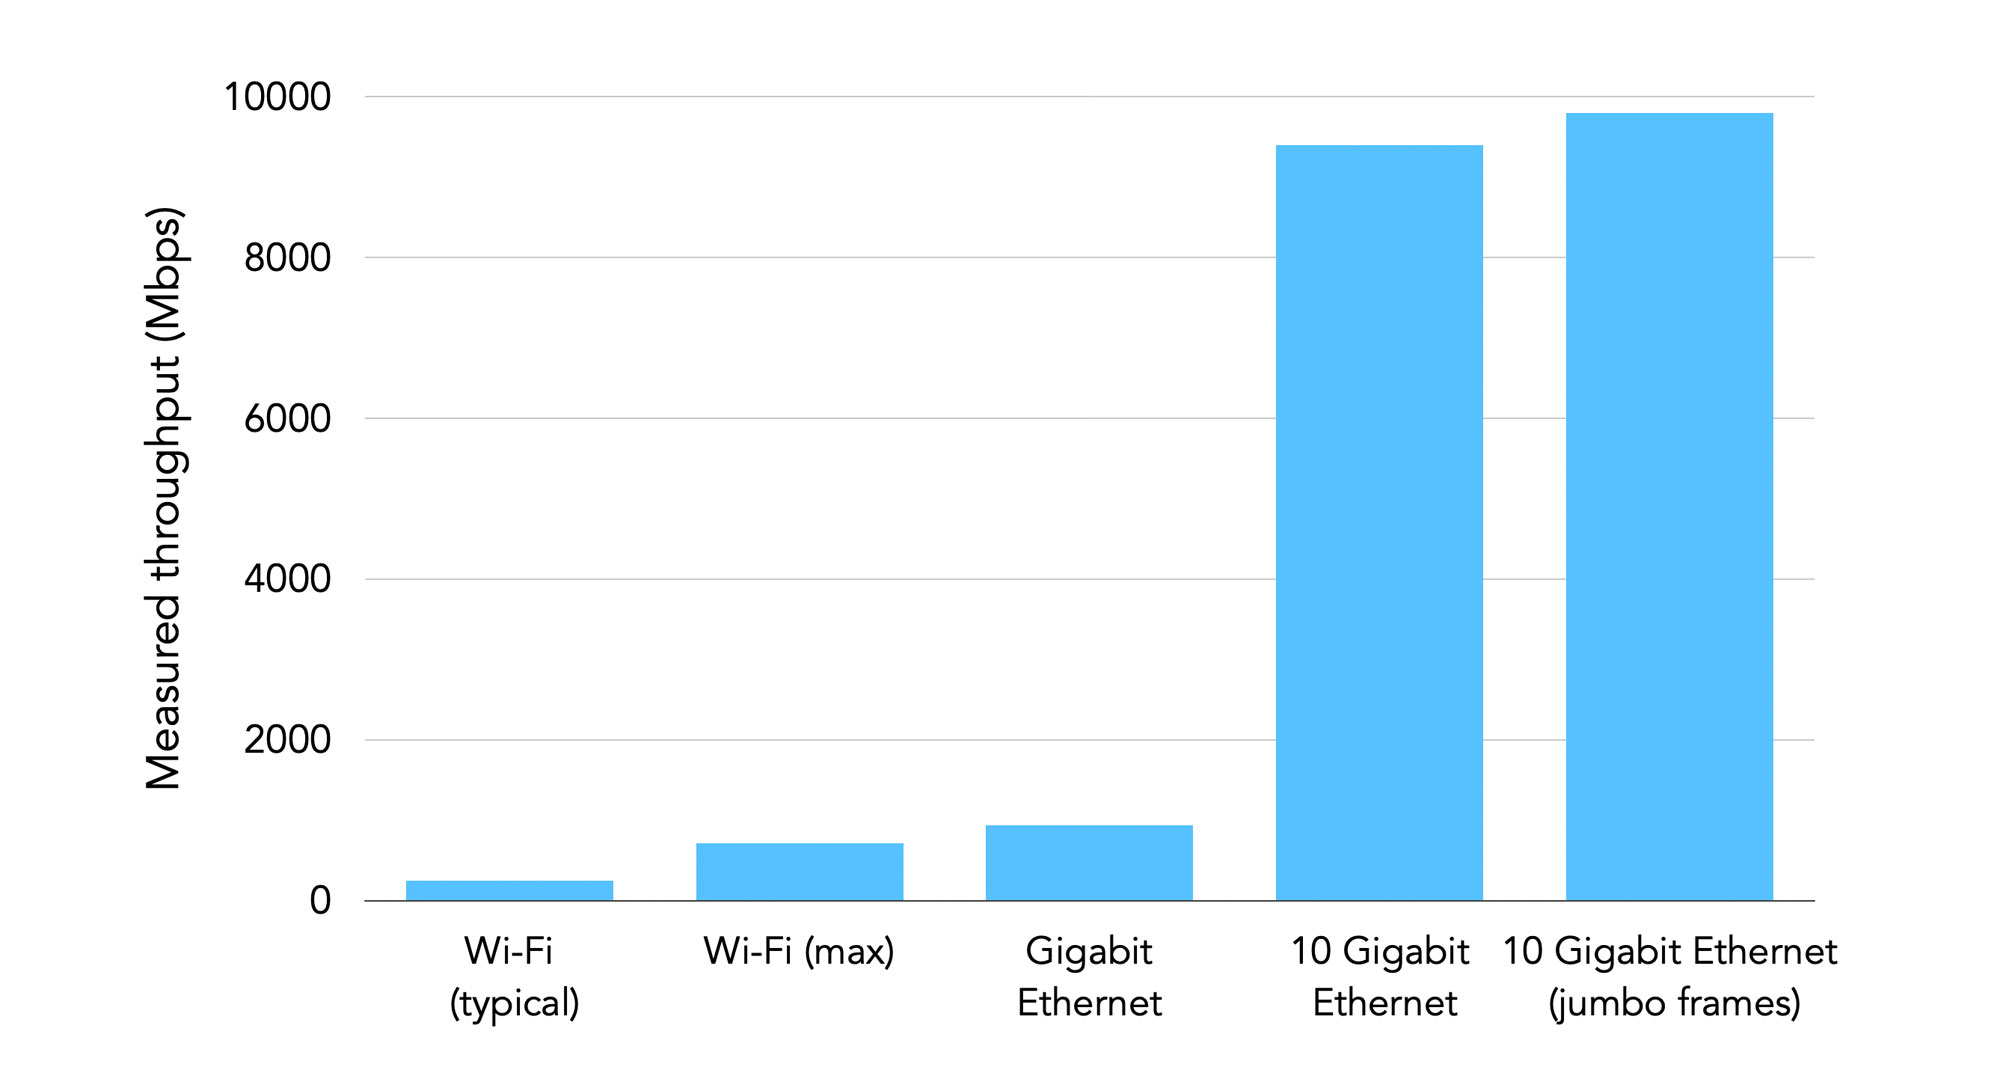 Speed comparison of Wi-Fi versus Gigabit Ethernet and 10 gigabit ethernet